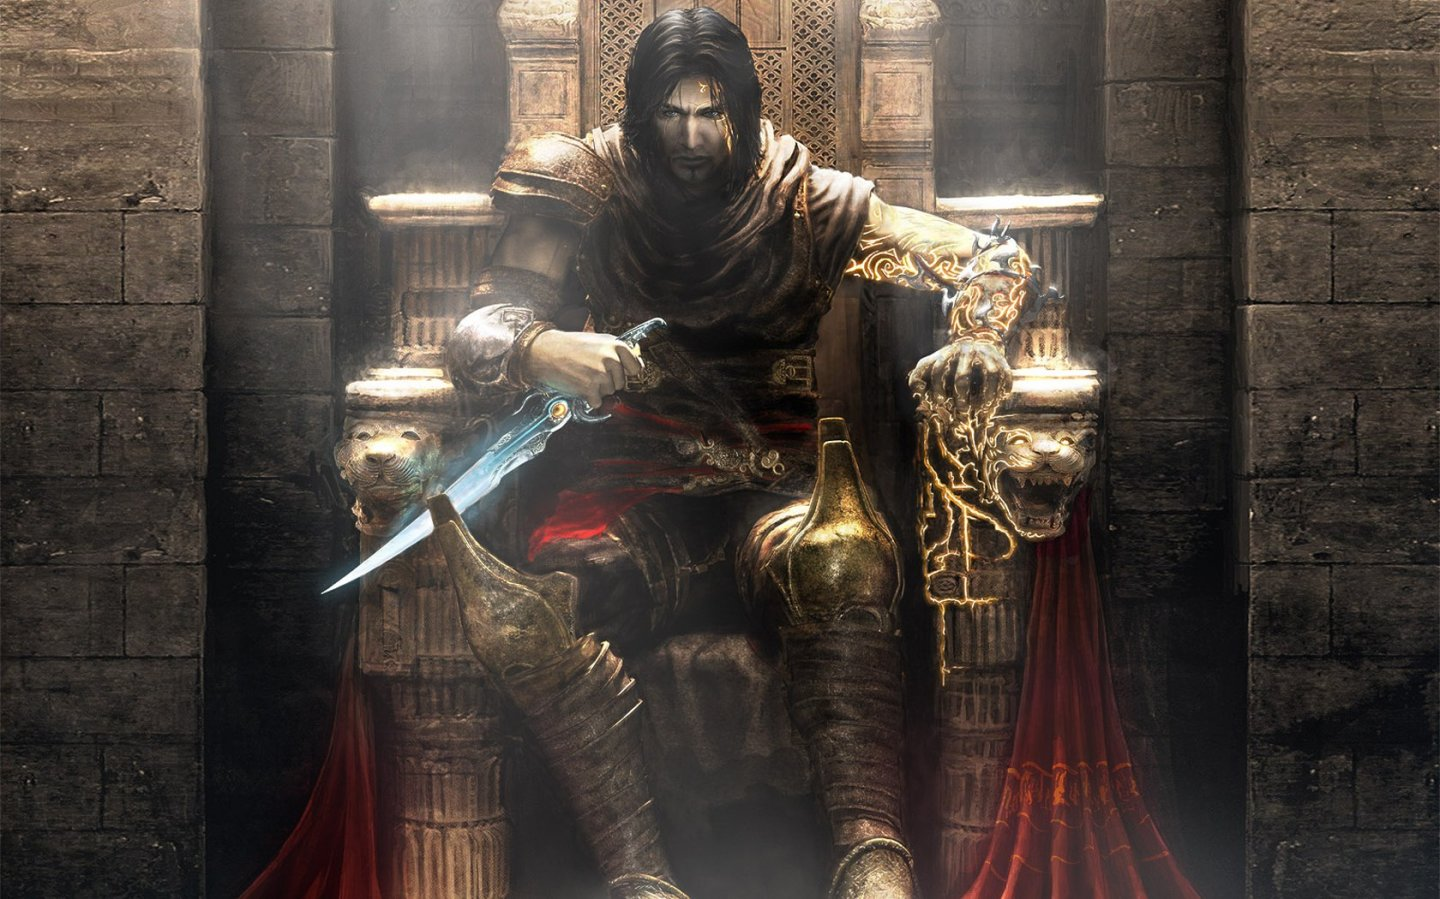 http://1.bp.blogspot.com/-8eSDjaqgVik/Tbz7ii_0ENI/AAAAAAAAAaU/gxhHXB3hJqg/s1600/wallpaper_prince_of_persia_the_two_thrones_04.jpg